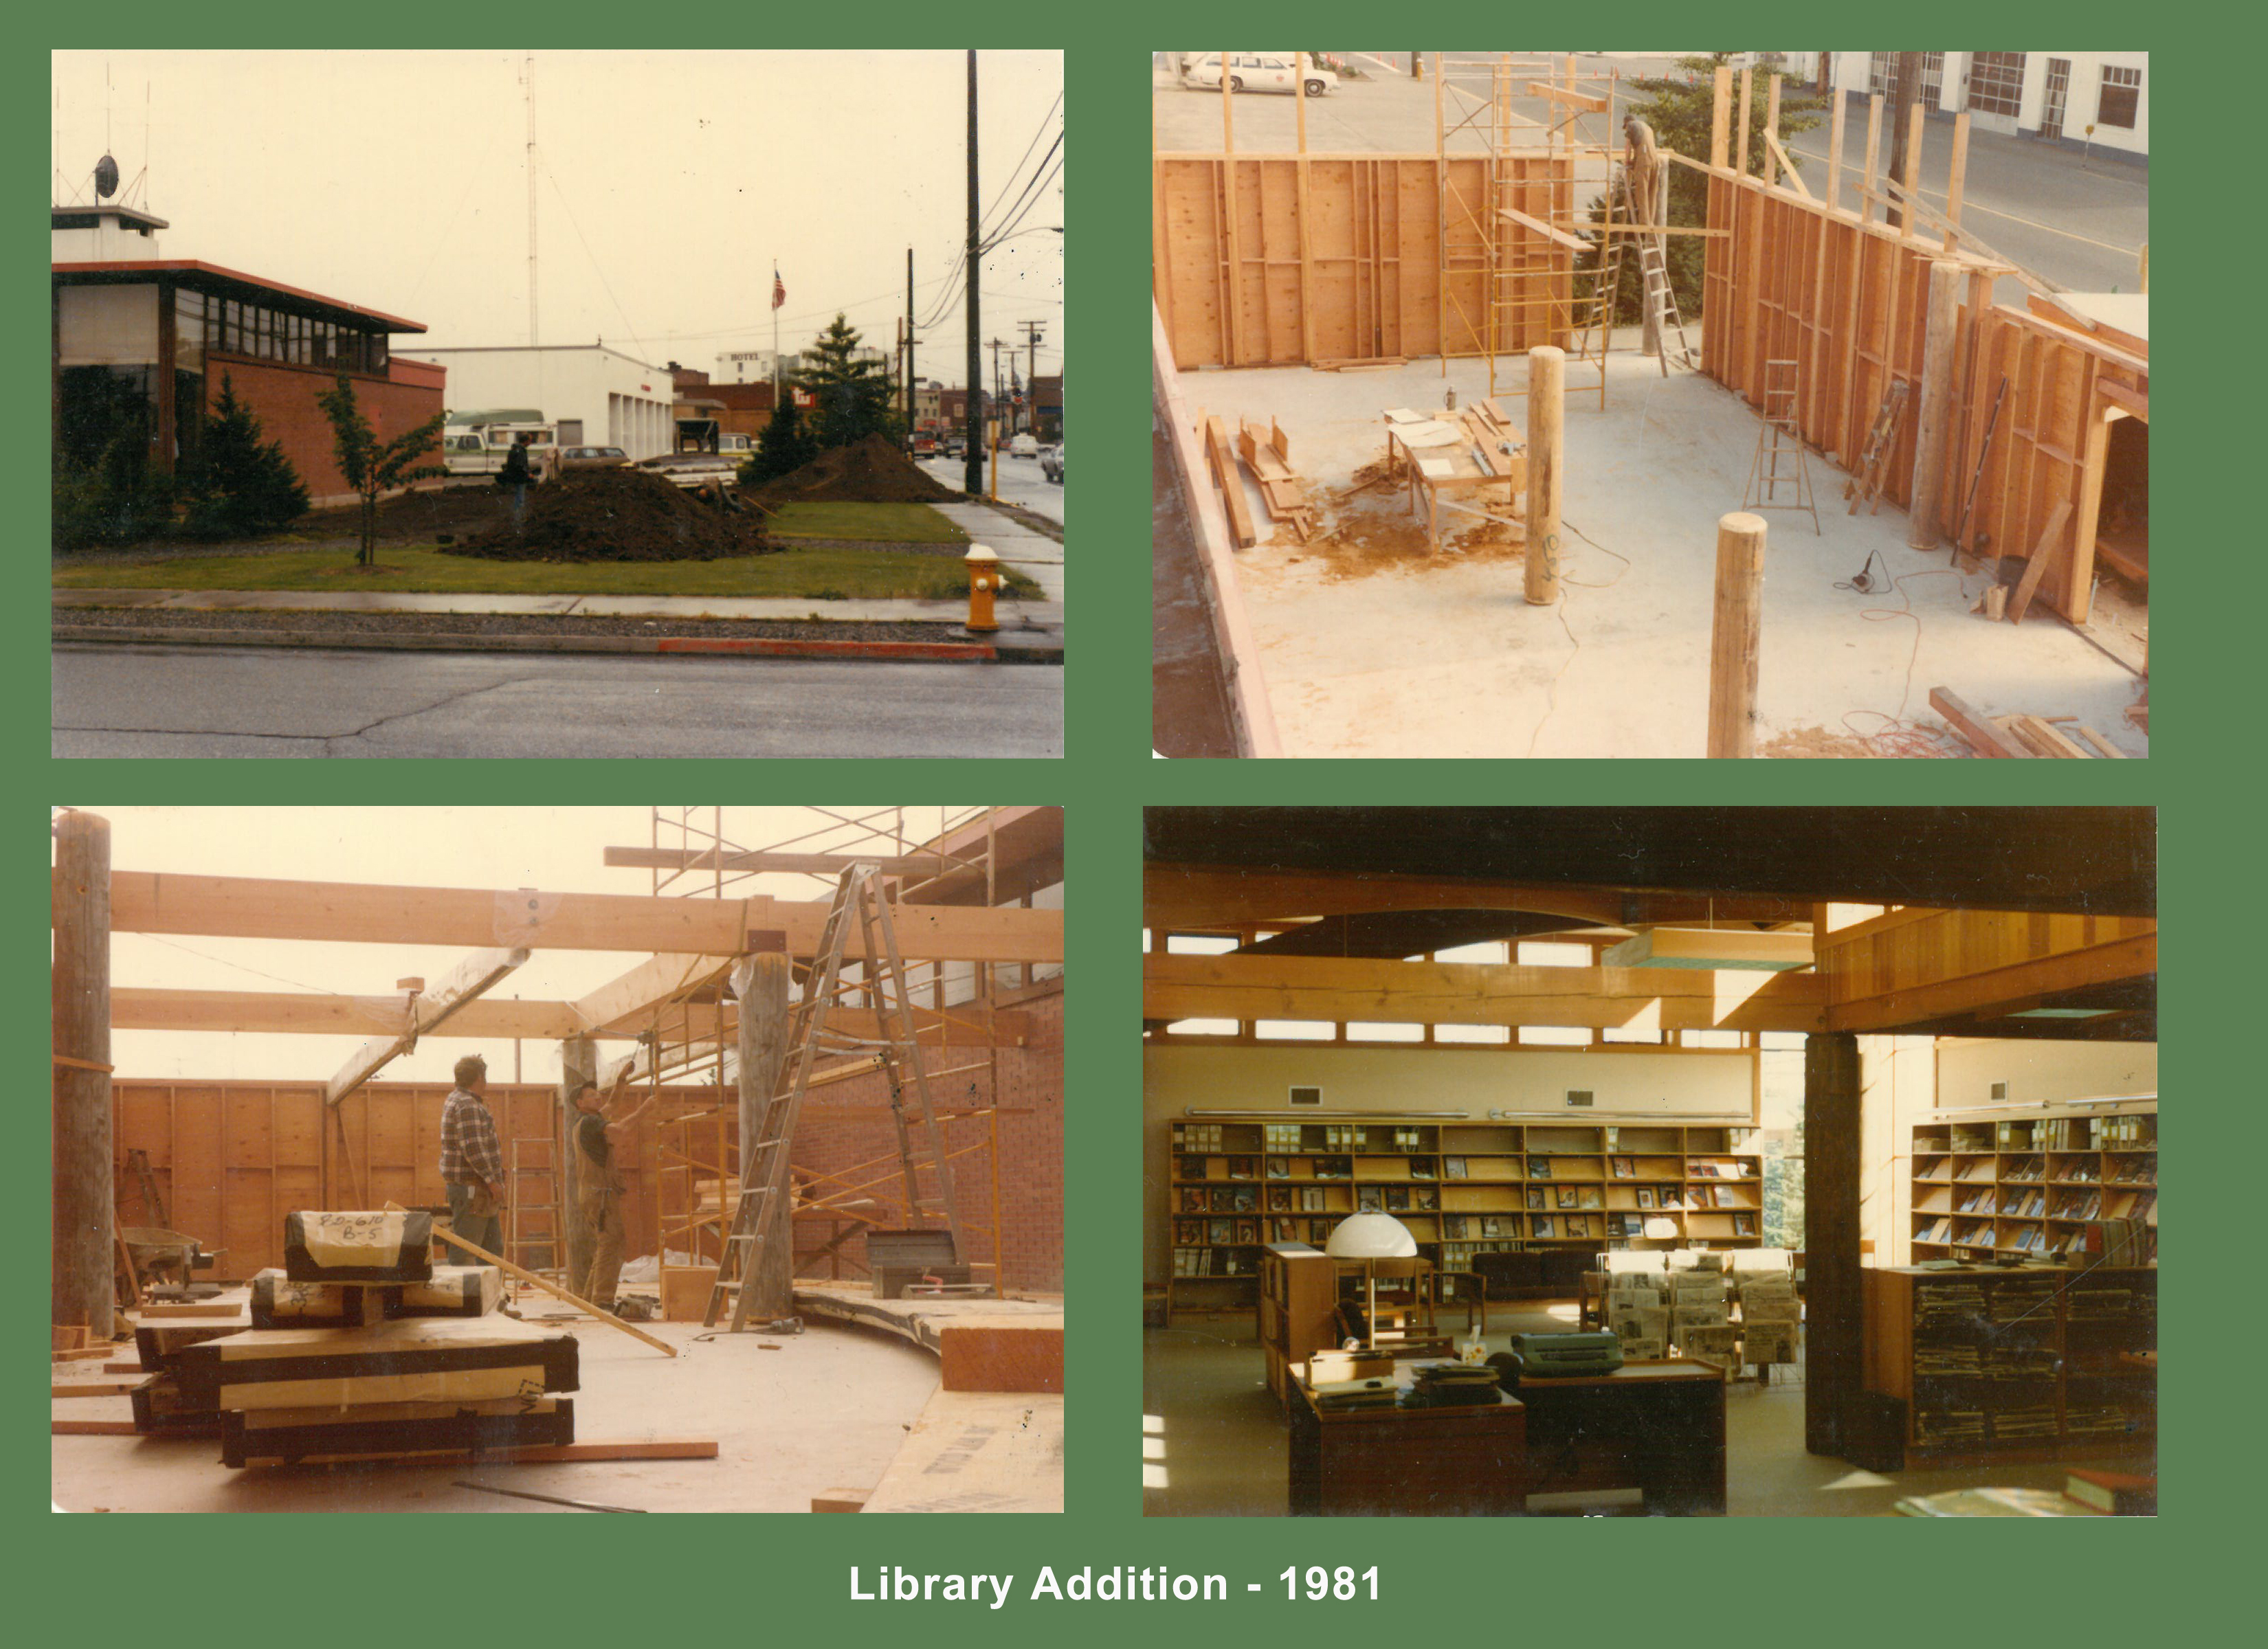 Library Addition 1981